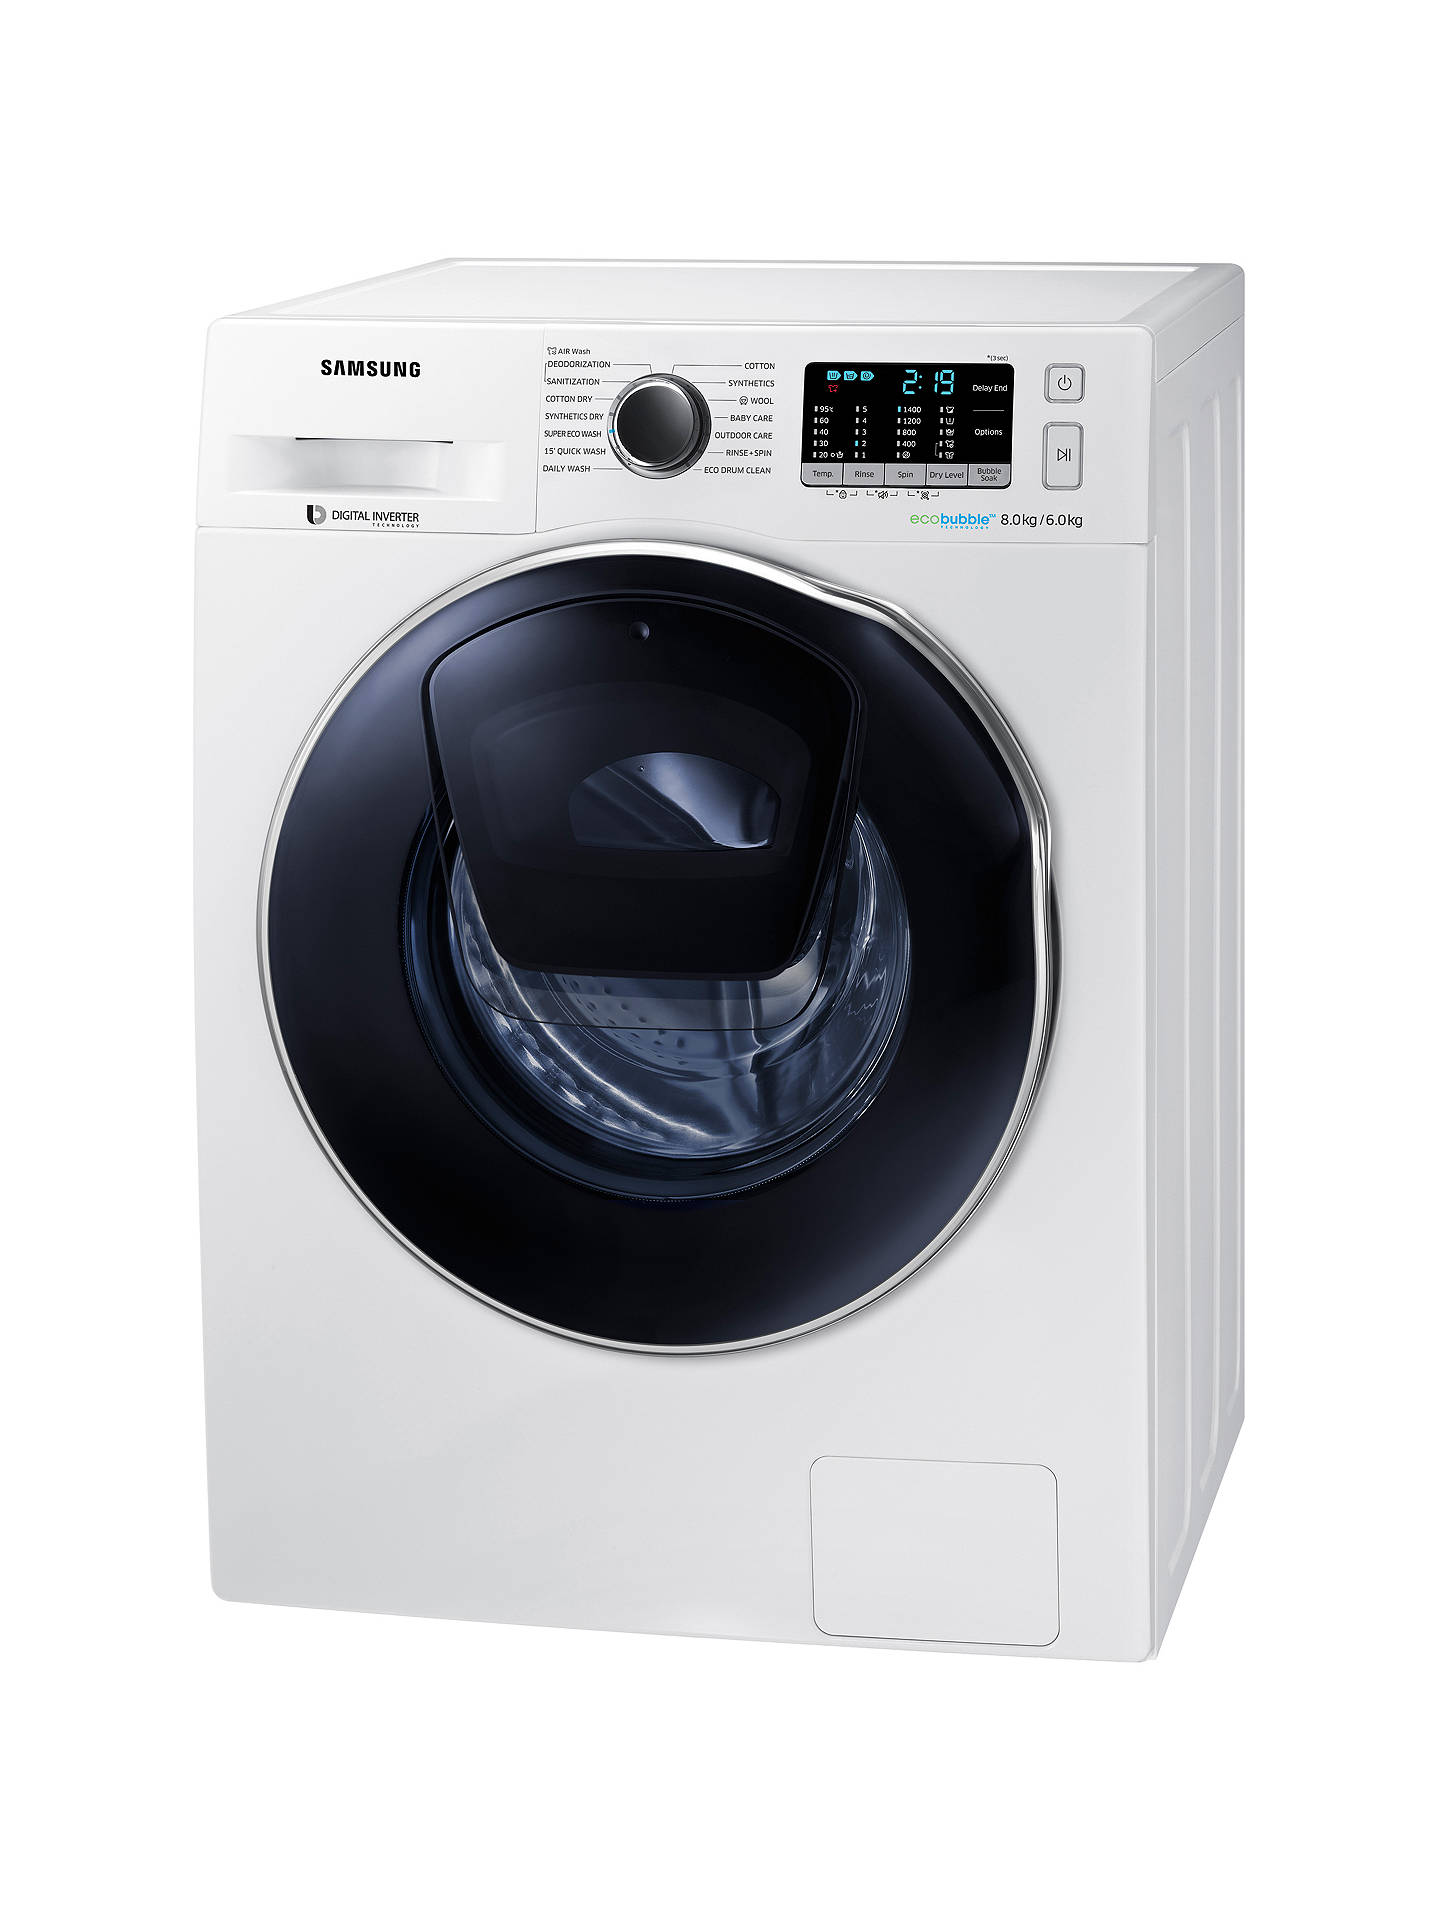 BuySamsung AddWash WD80K5B10OW/EU Freestanding Washer Dryer, 8kg Wash/6kg Dry Load, B Energy Rating, 1400rpm Spin, White Online at johnlewis.com